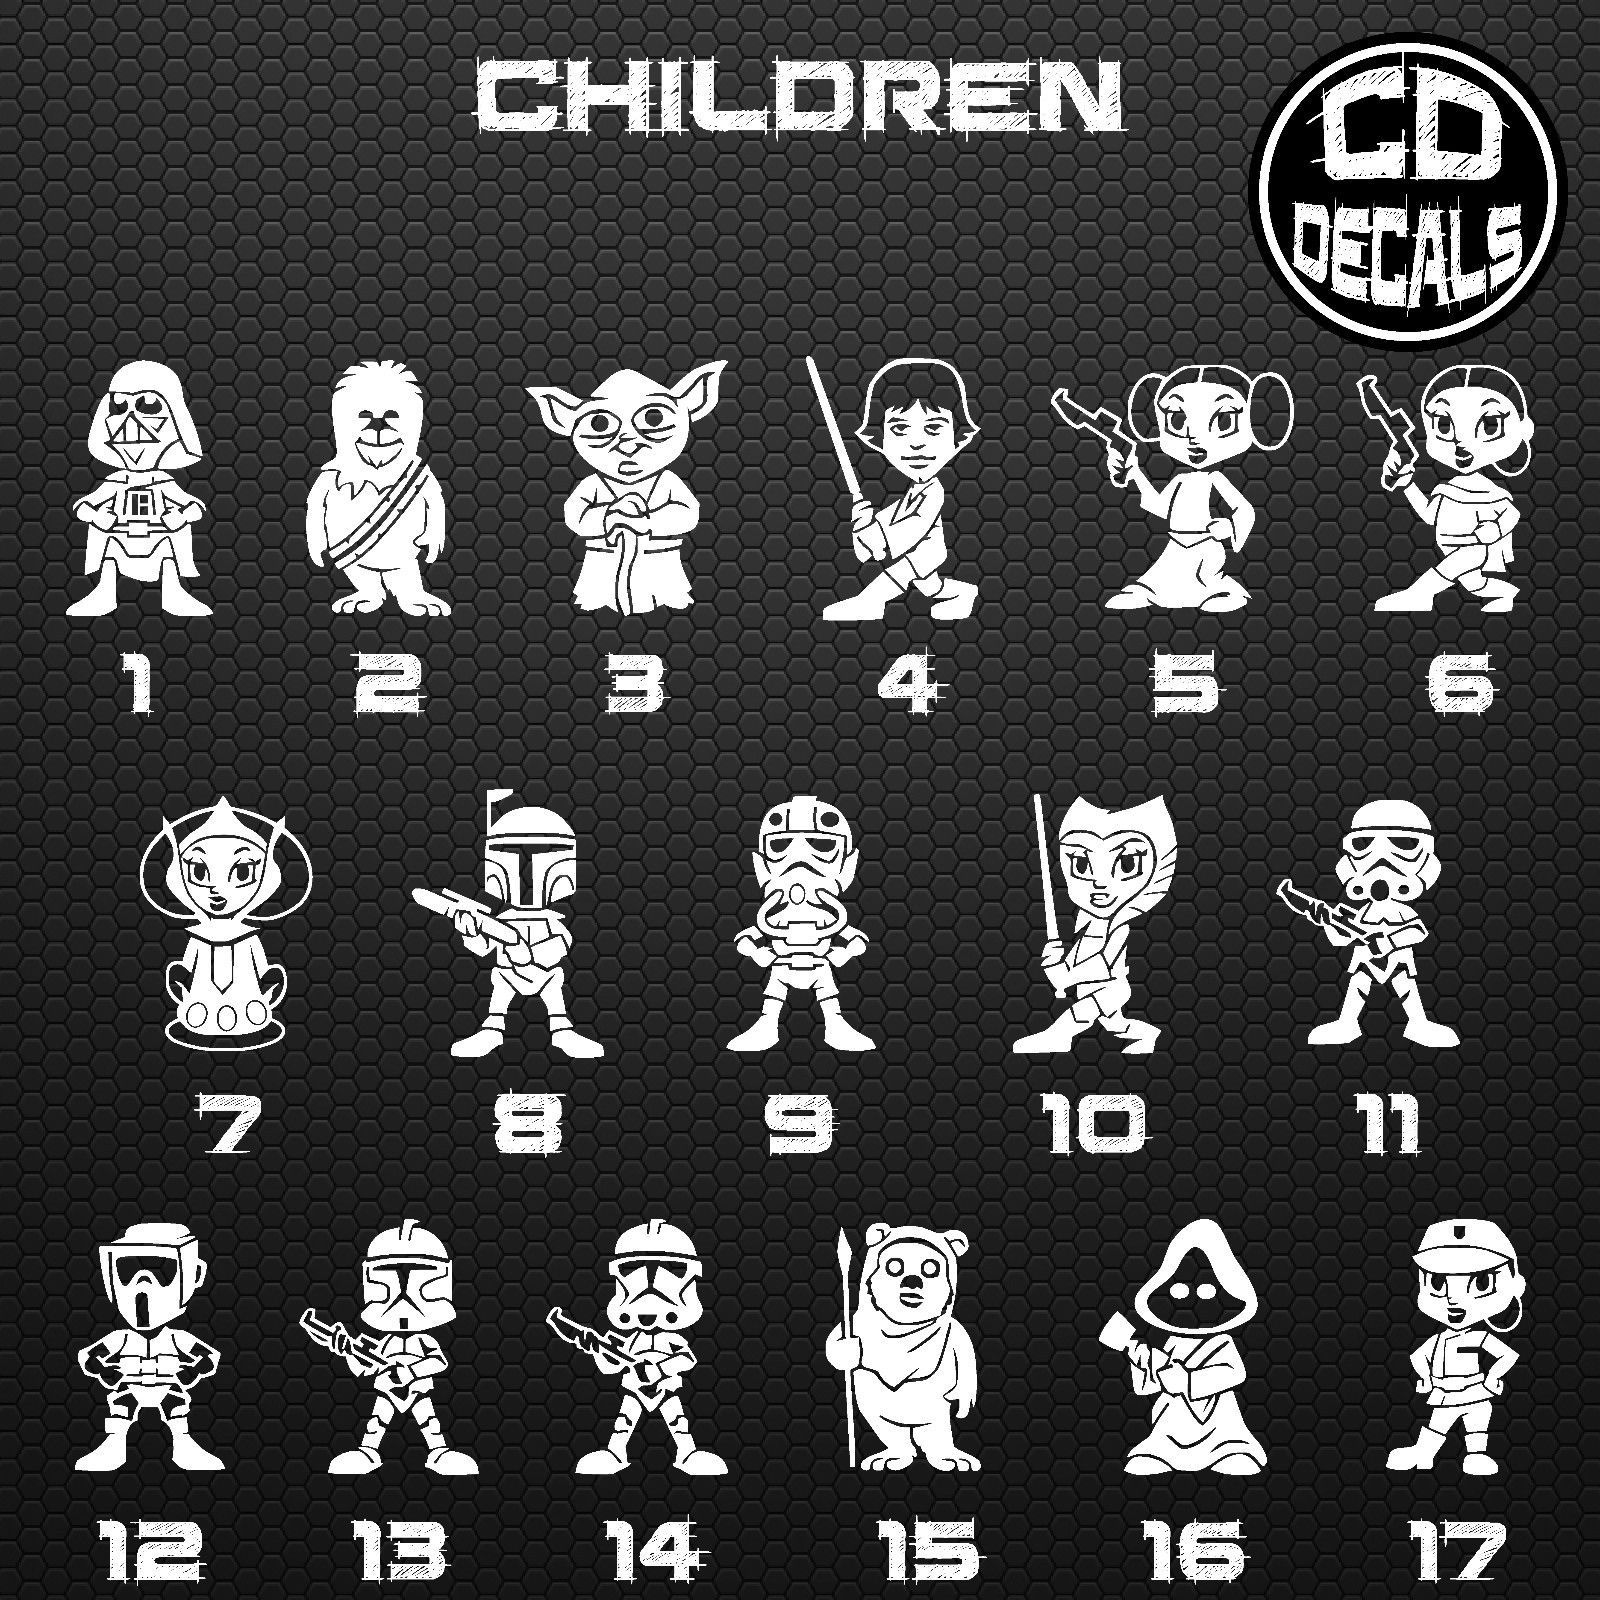 Star wars stick figure family vinyl decal sticker car window wall laptop cartoon ebay